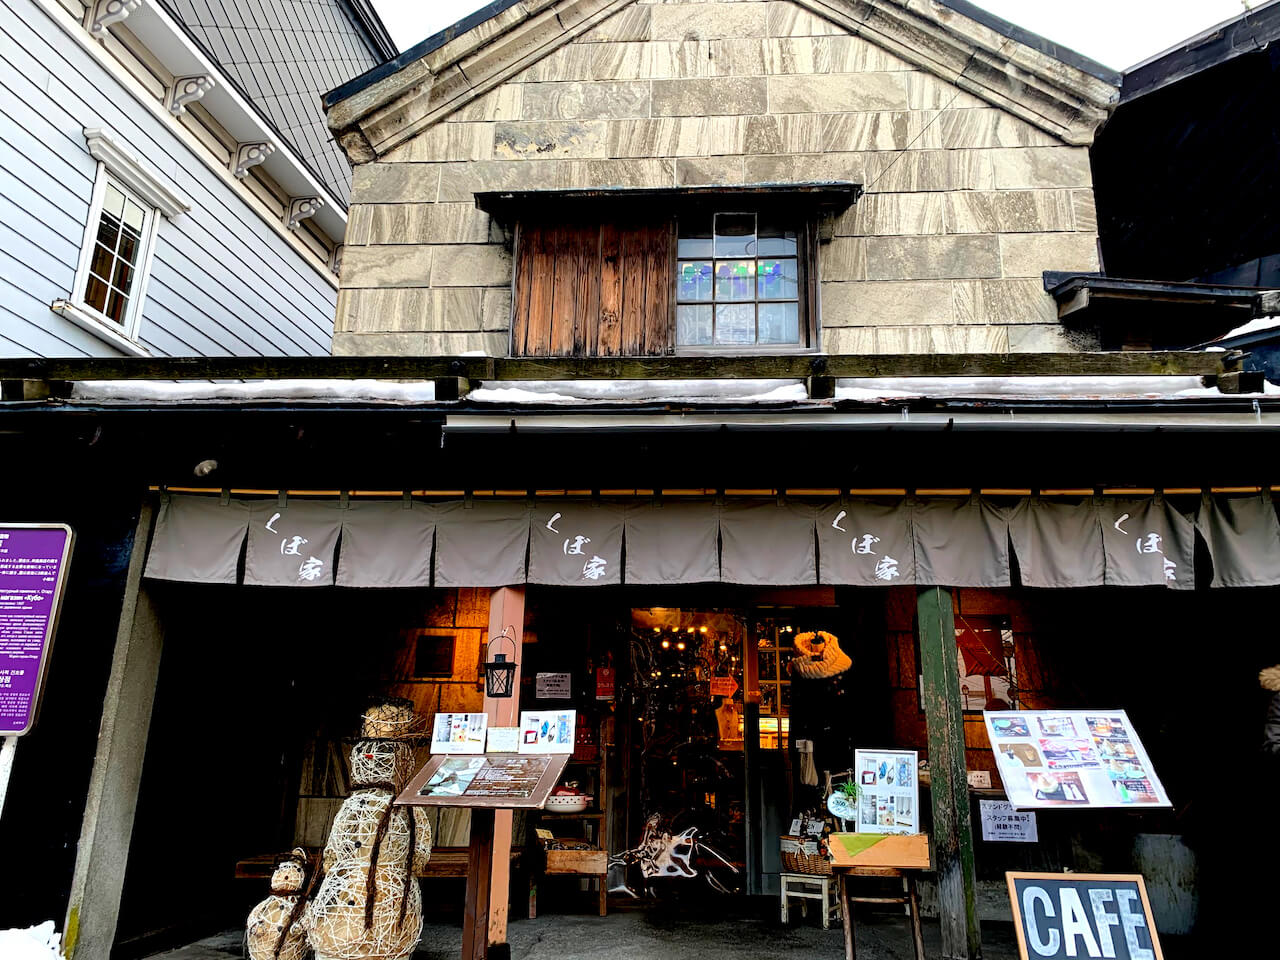 Historical Architecture Meets Unique Tableware at the Kuboya Cafe